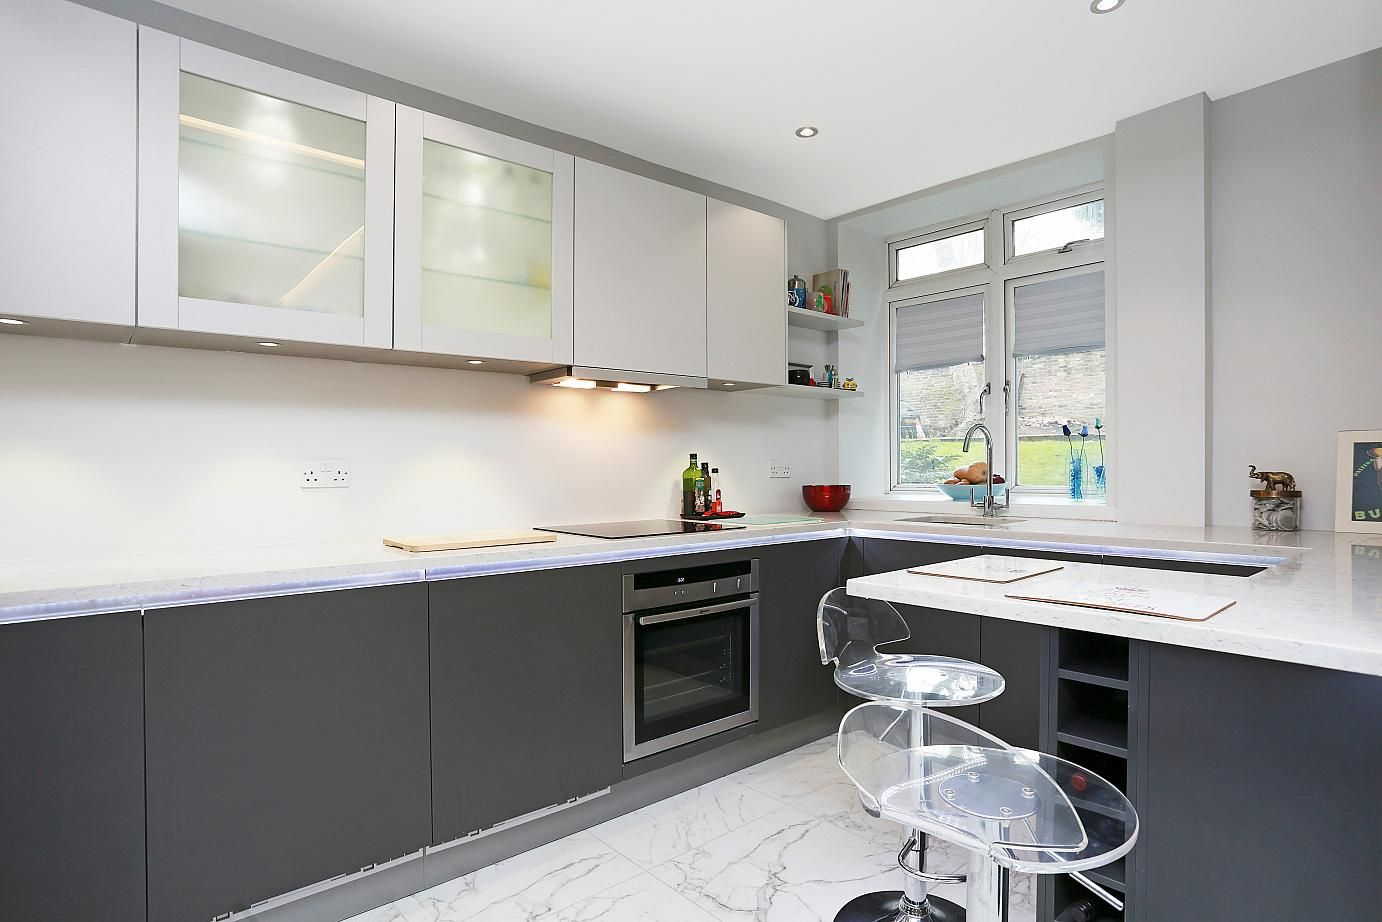 Download Wallpaper How To Accessorize A Grey And White Kitchen